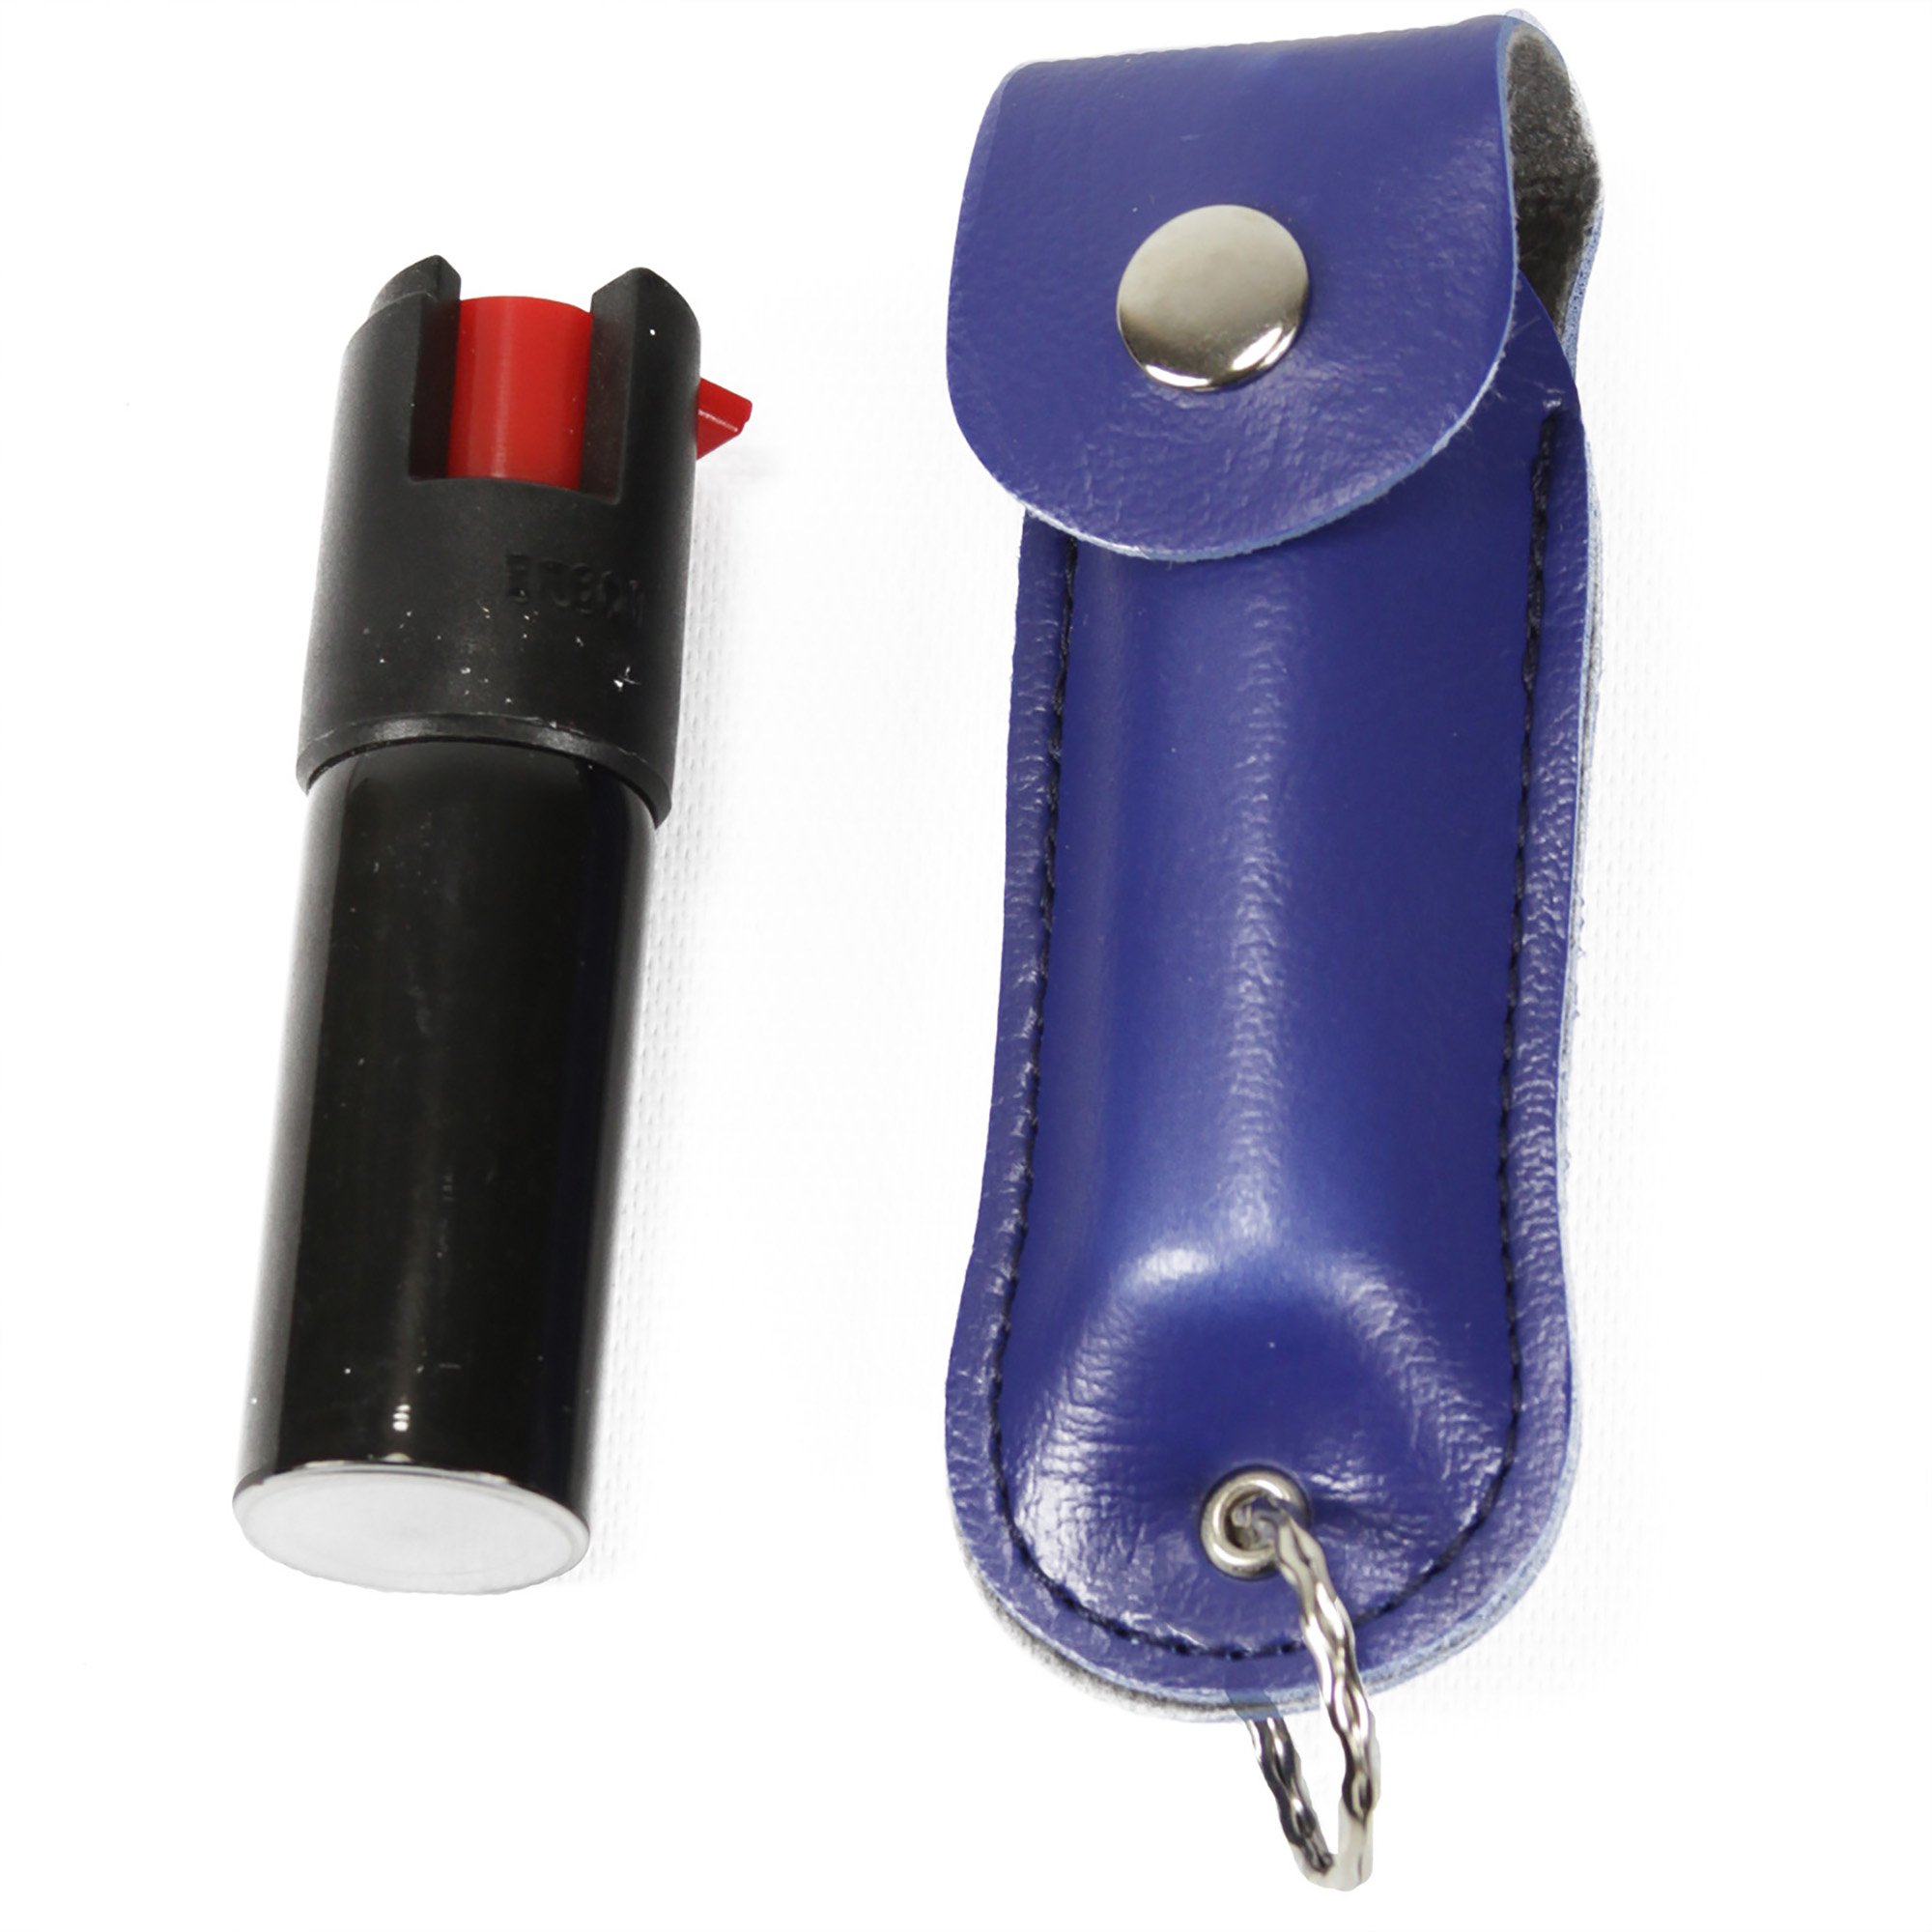 Style PP12 - Pepper Spray with Leatherette Holster Key Ring - Blue (0.5 oz) by Pepper Plus